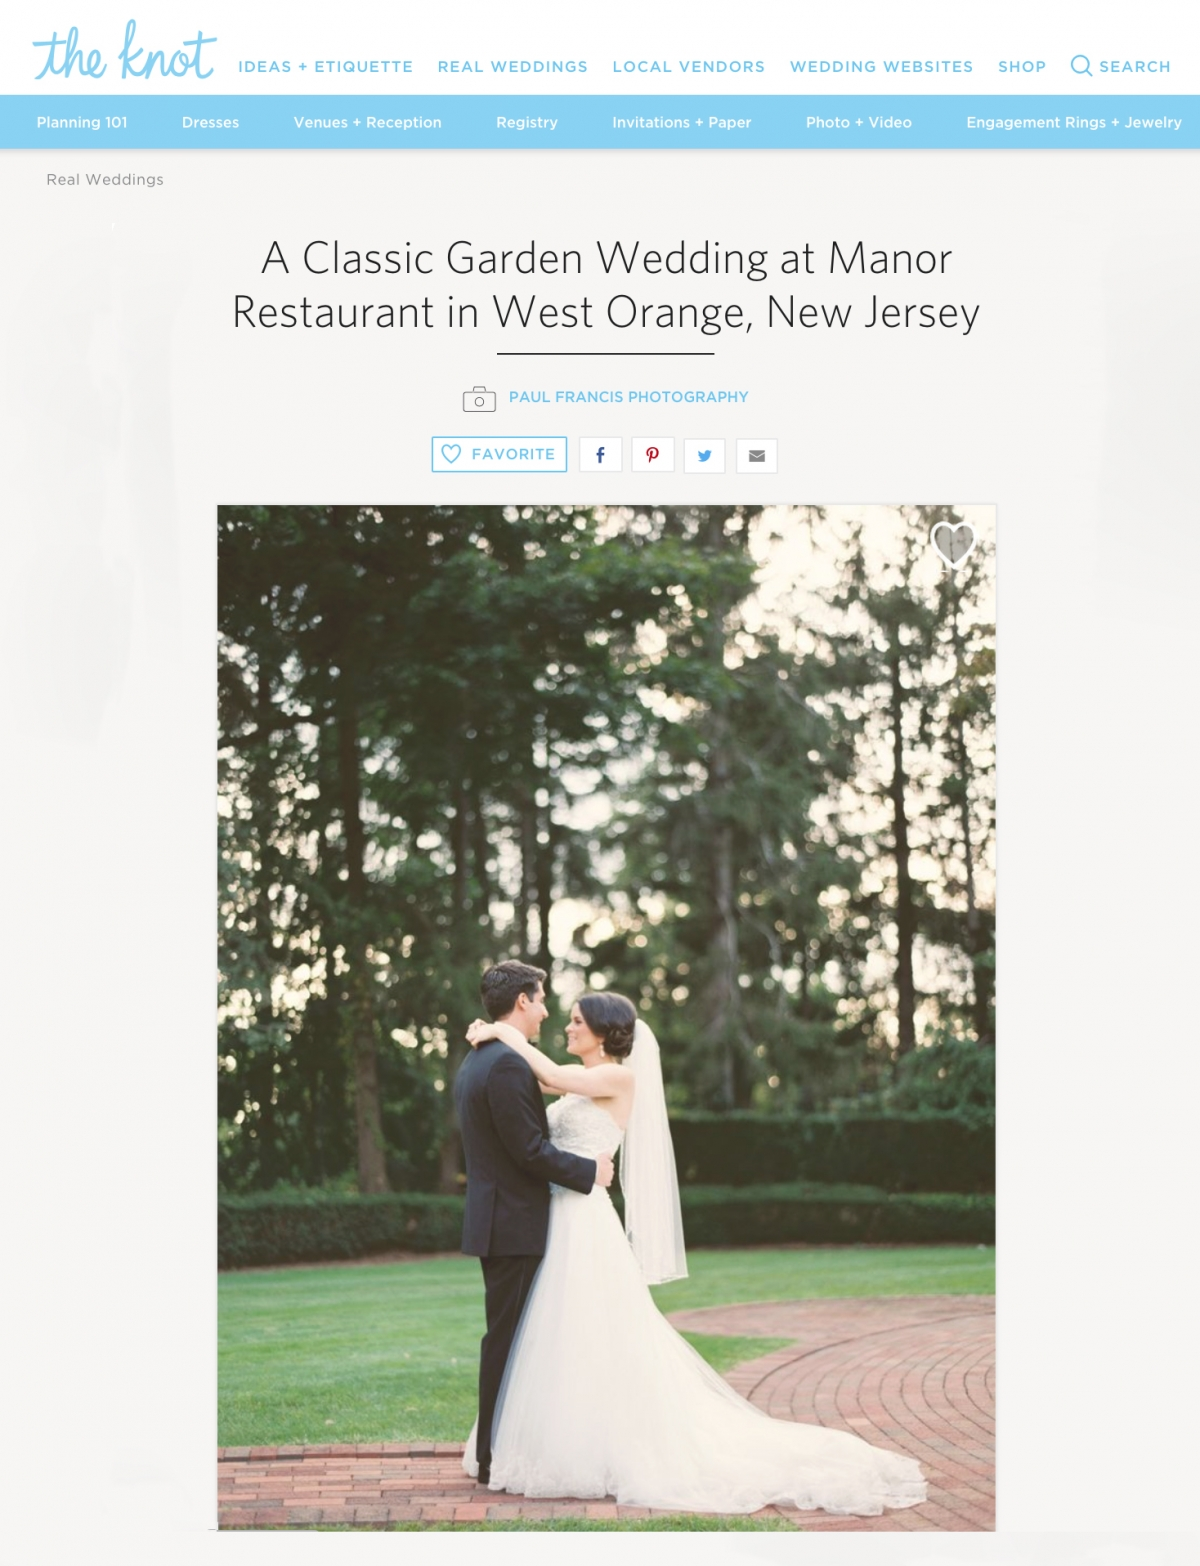 Jillian & Franco Published {The Knot} » Paul Francis Photography